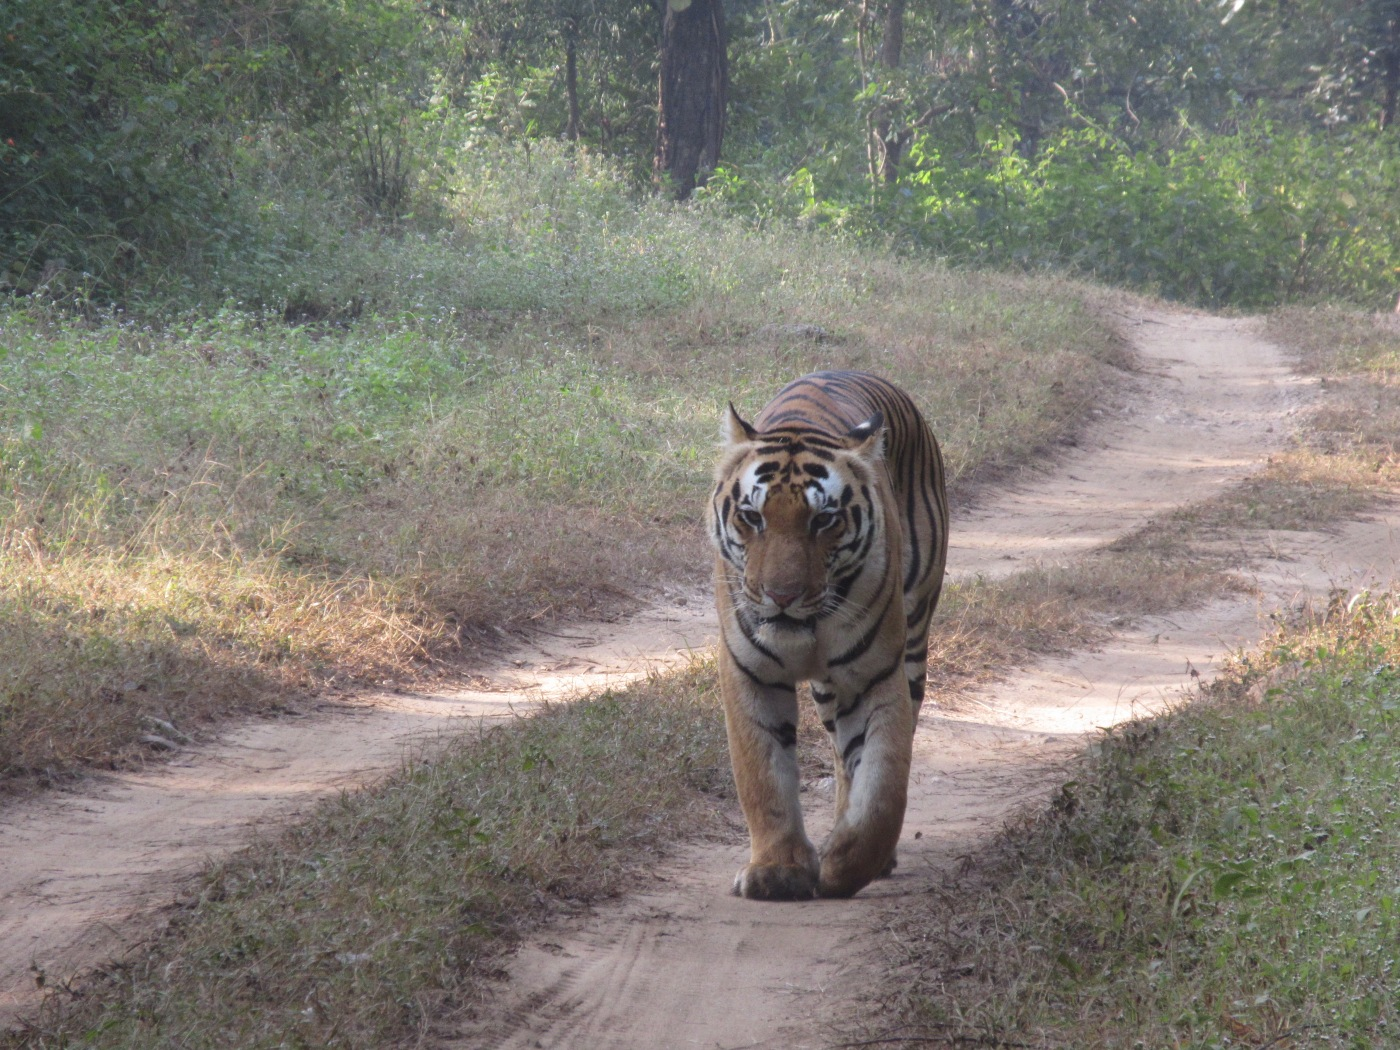 A Wild Male Tiger in India's Kanha National Park